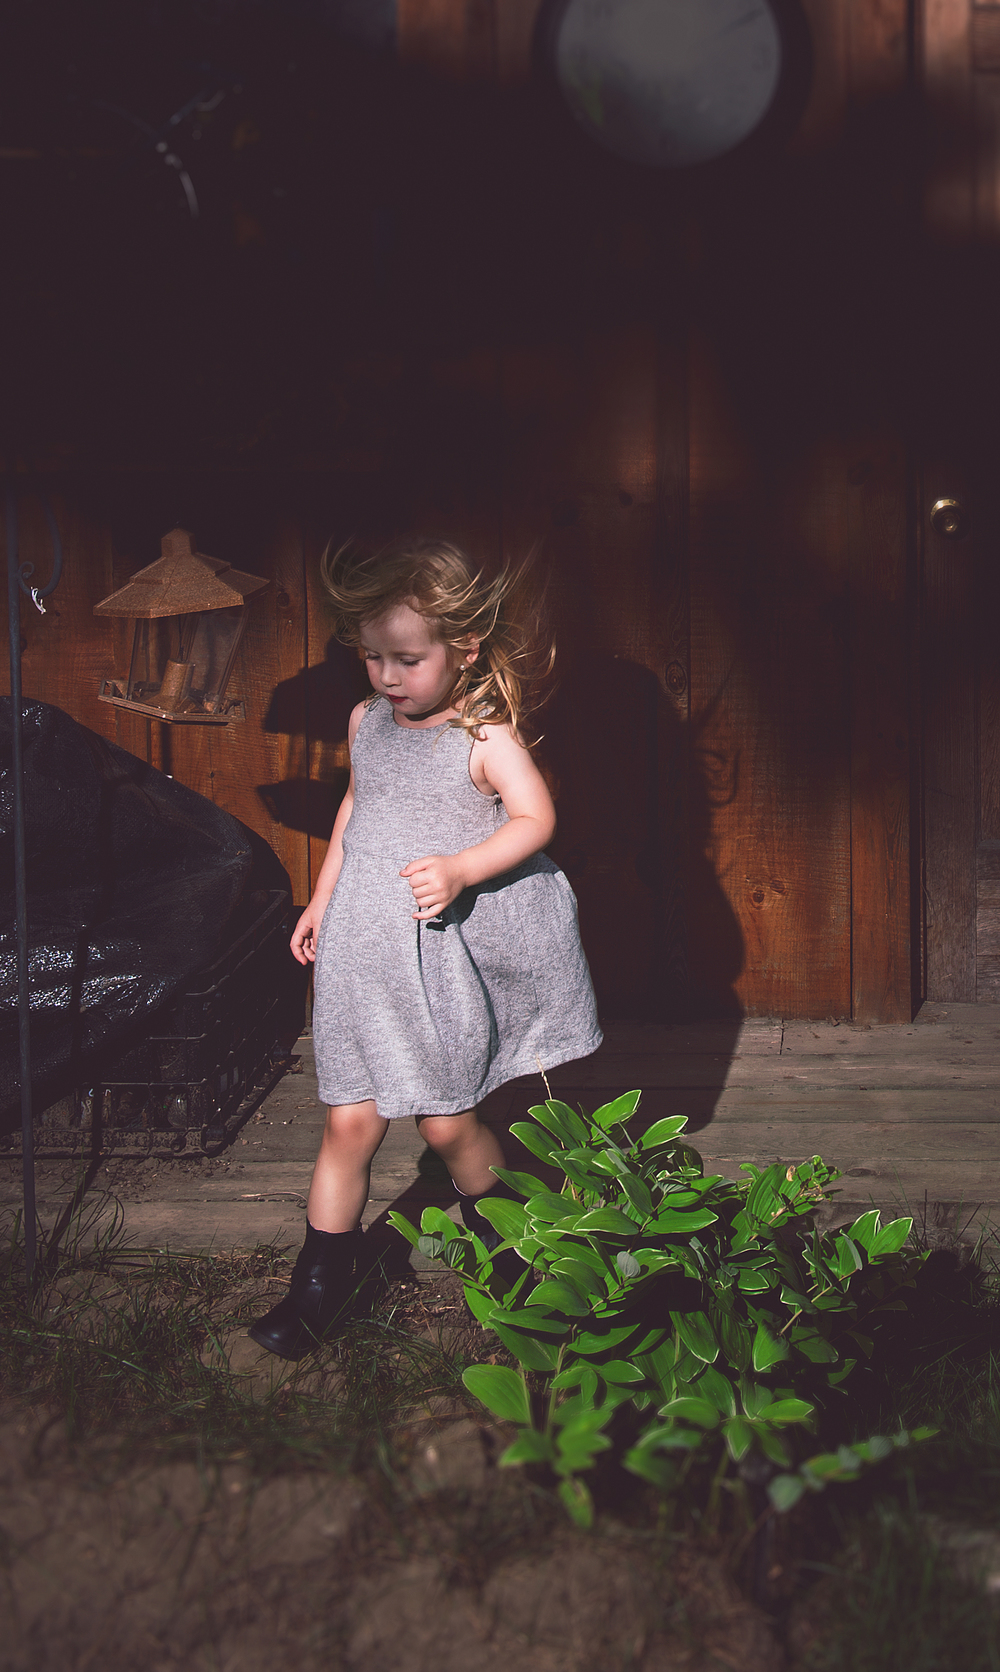 Pyper didn't want to do pictures anymore, she was getting tired. As the wind blew, she decided to walk off set. Sometimes the best images are the unplanned, quick shot images.